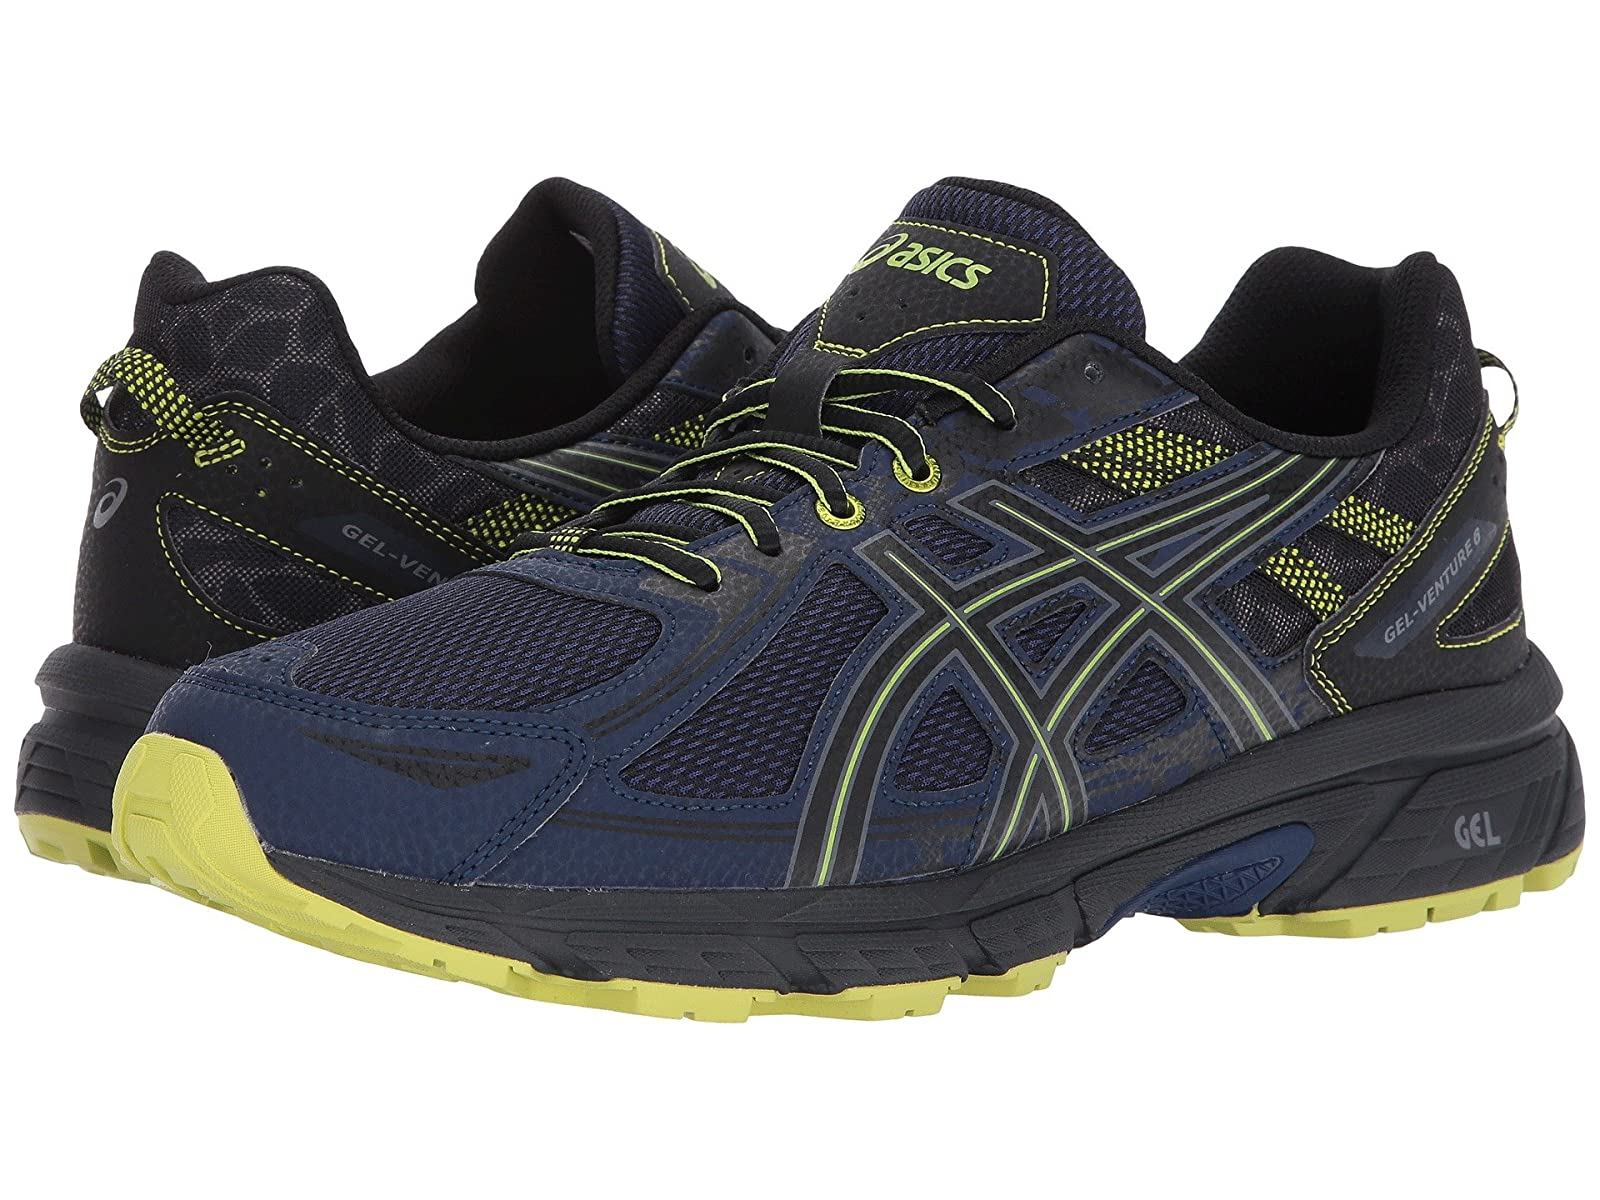 ASICS GEL-Venture® 6Atmospheric grades have affordable shoes